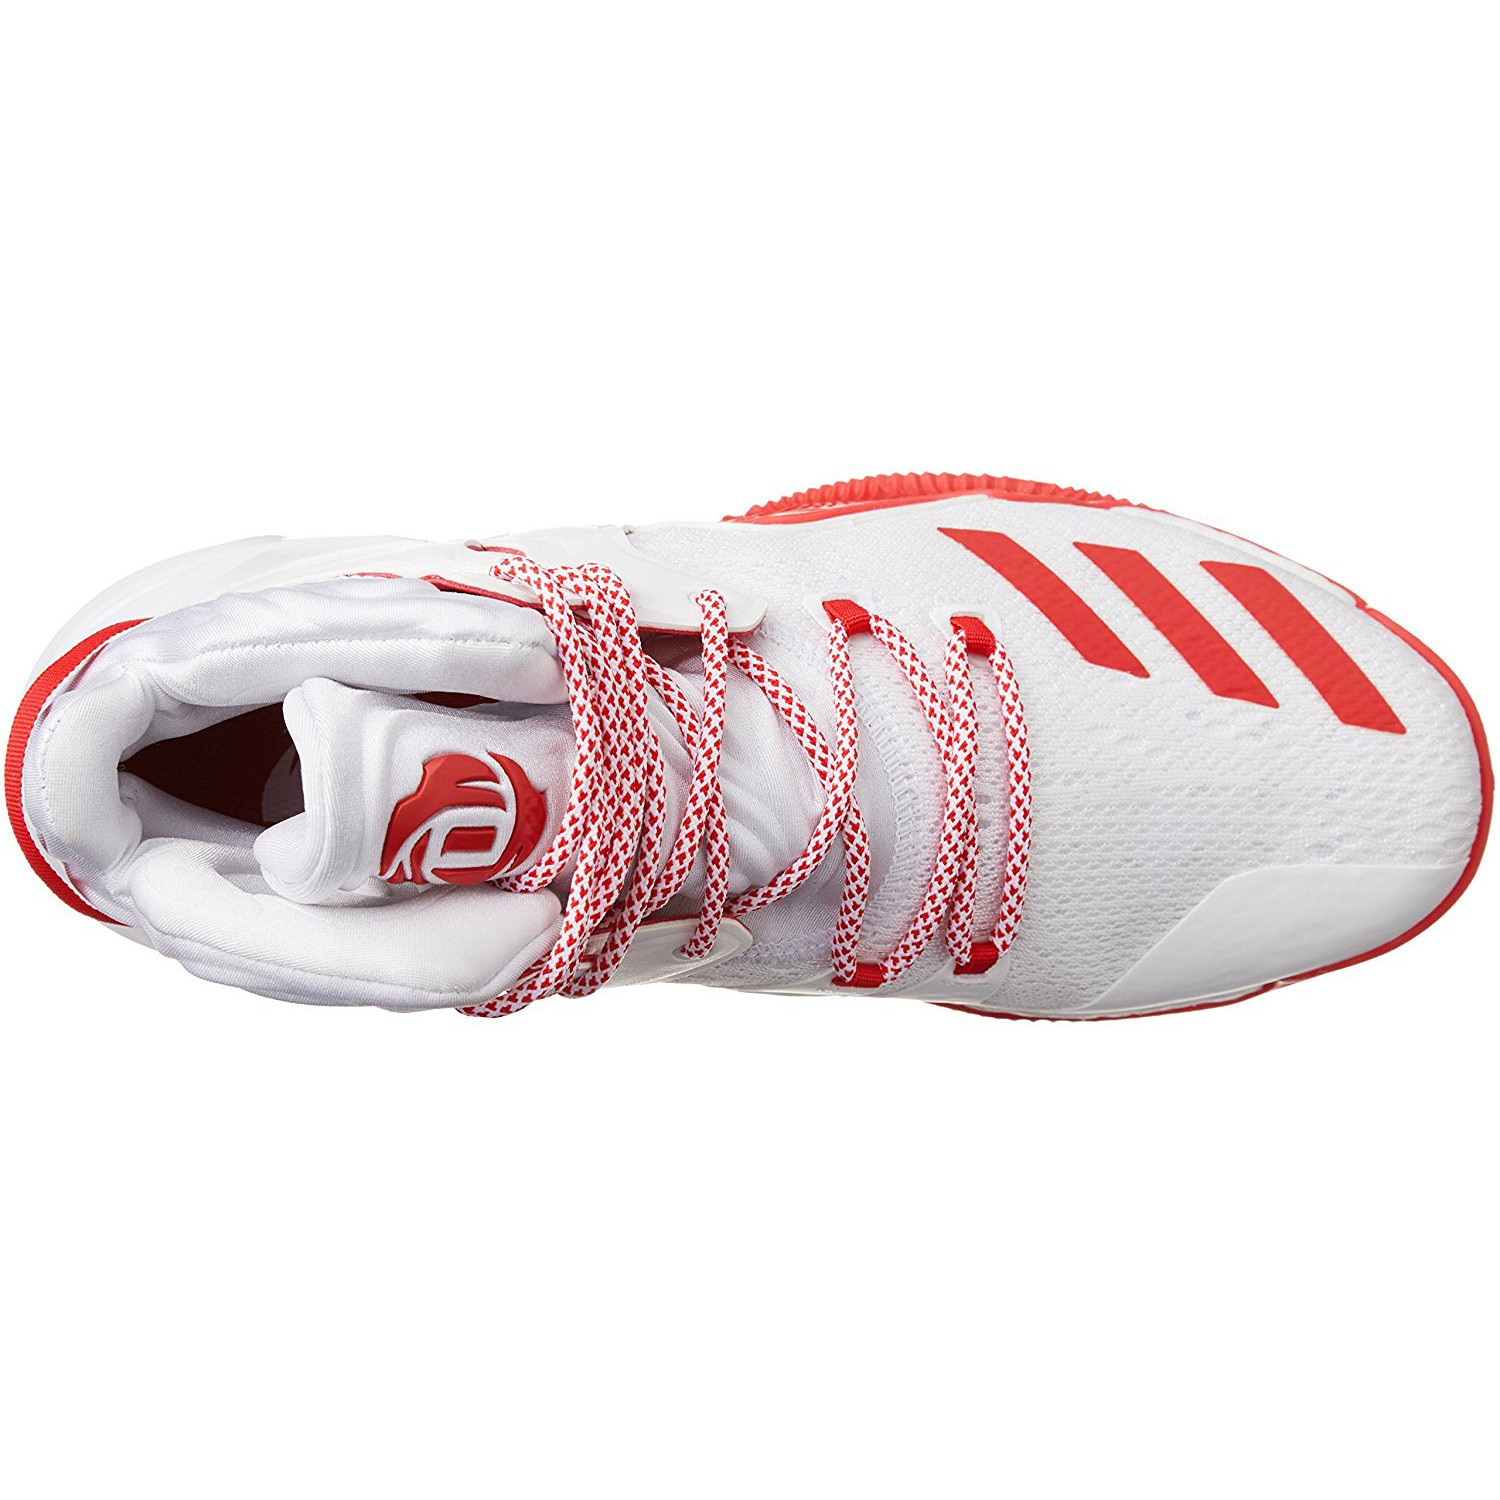 D Rose 7 Chaussure Homme ADIDAS BLANC pas cher Chaussures